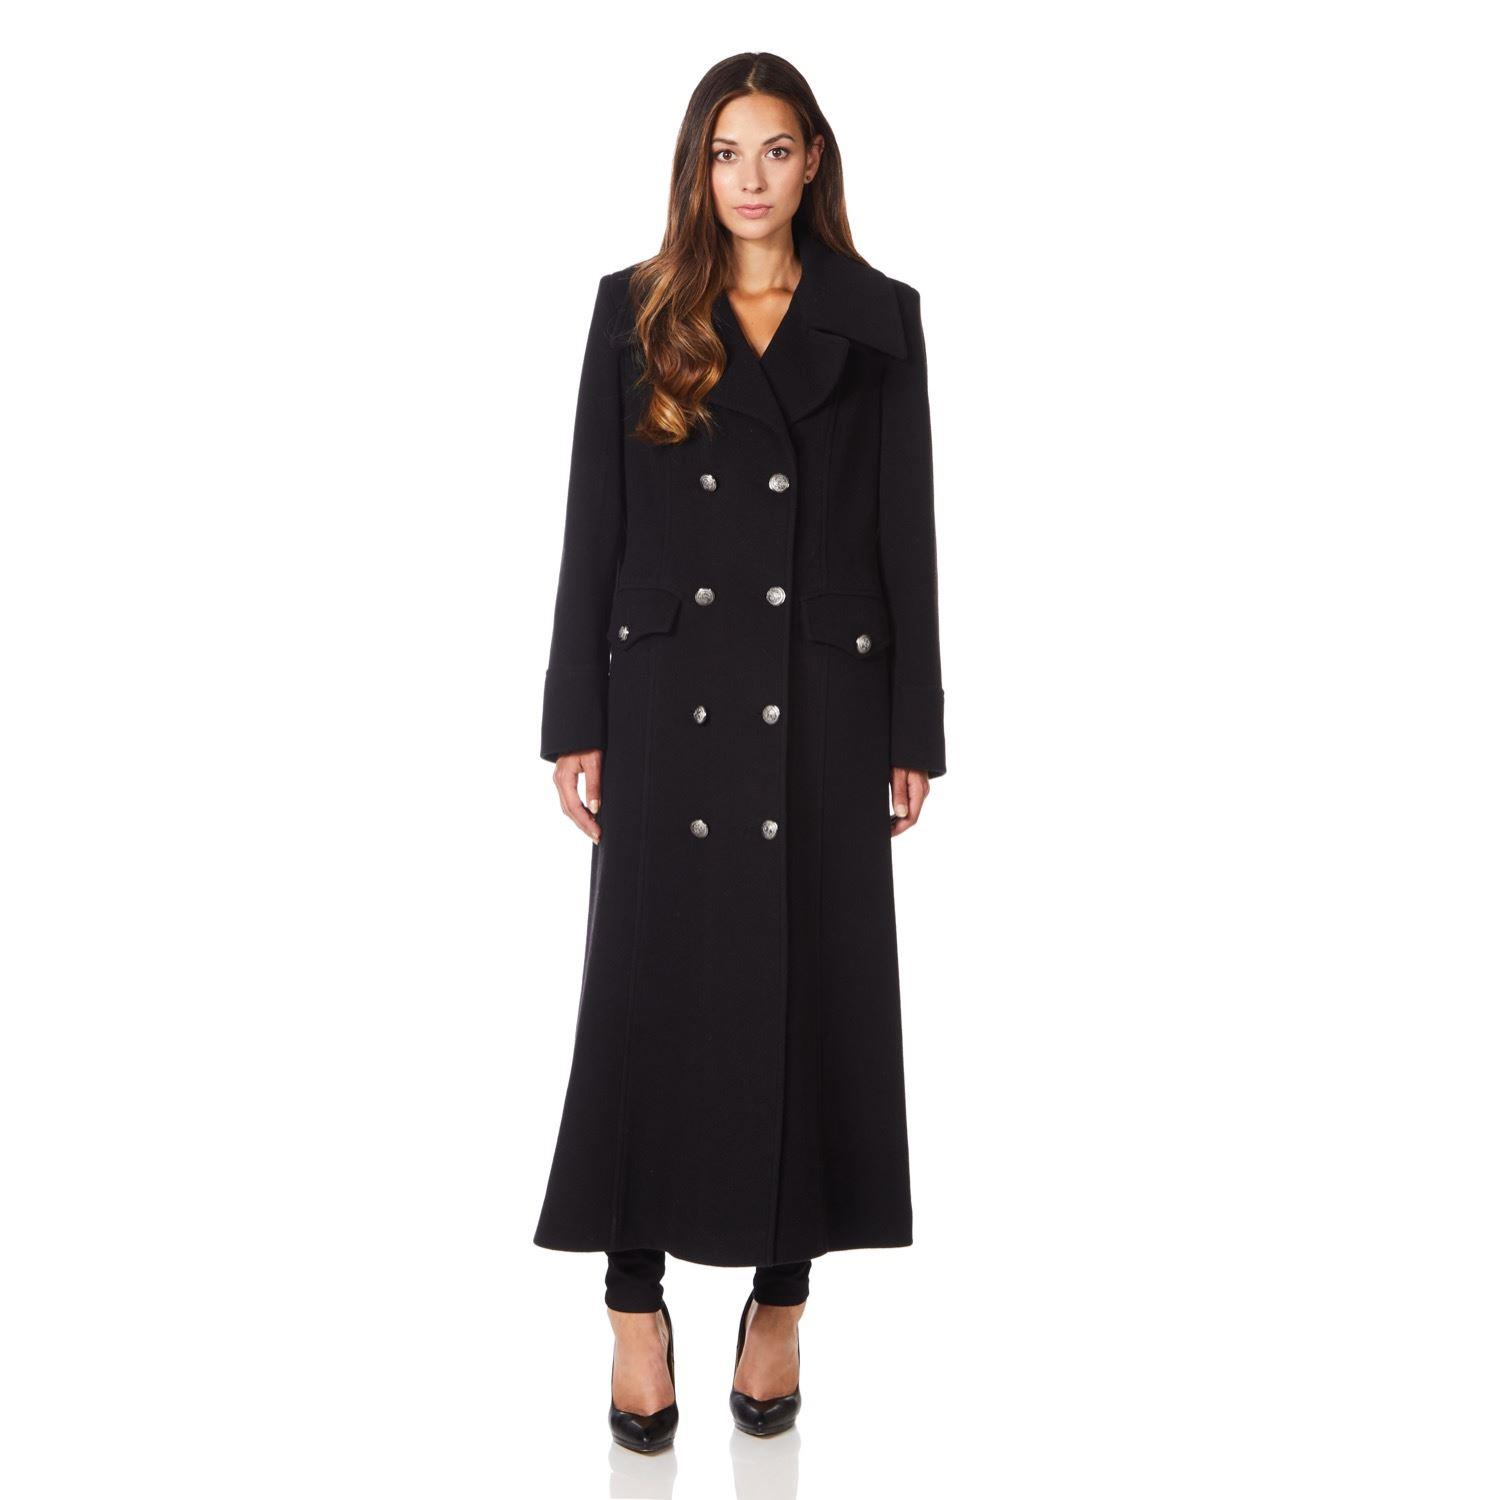 Anastasia - Womens Black Long Military Wool Cashmere Winter Coat